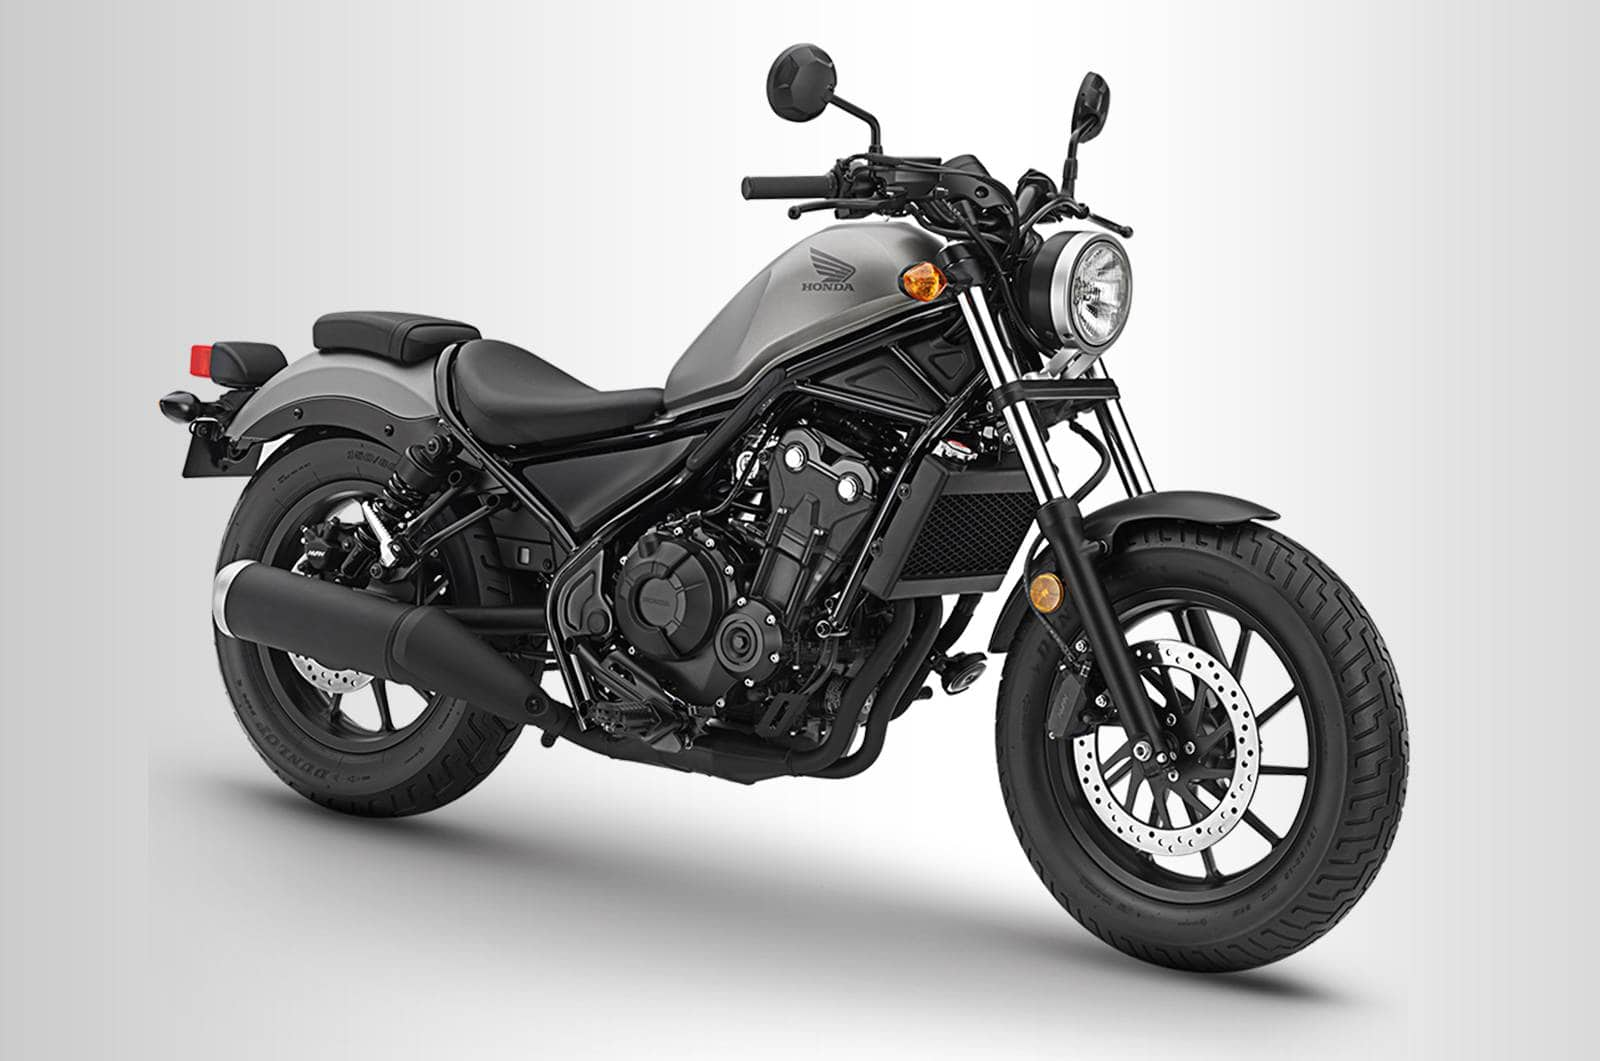 2021 UNITED US 70 Motorcycle Price, overview, review